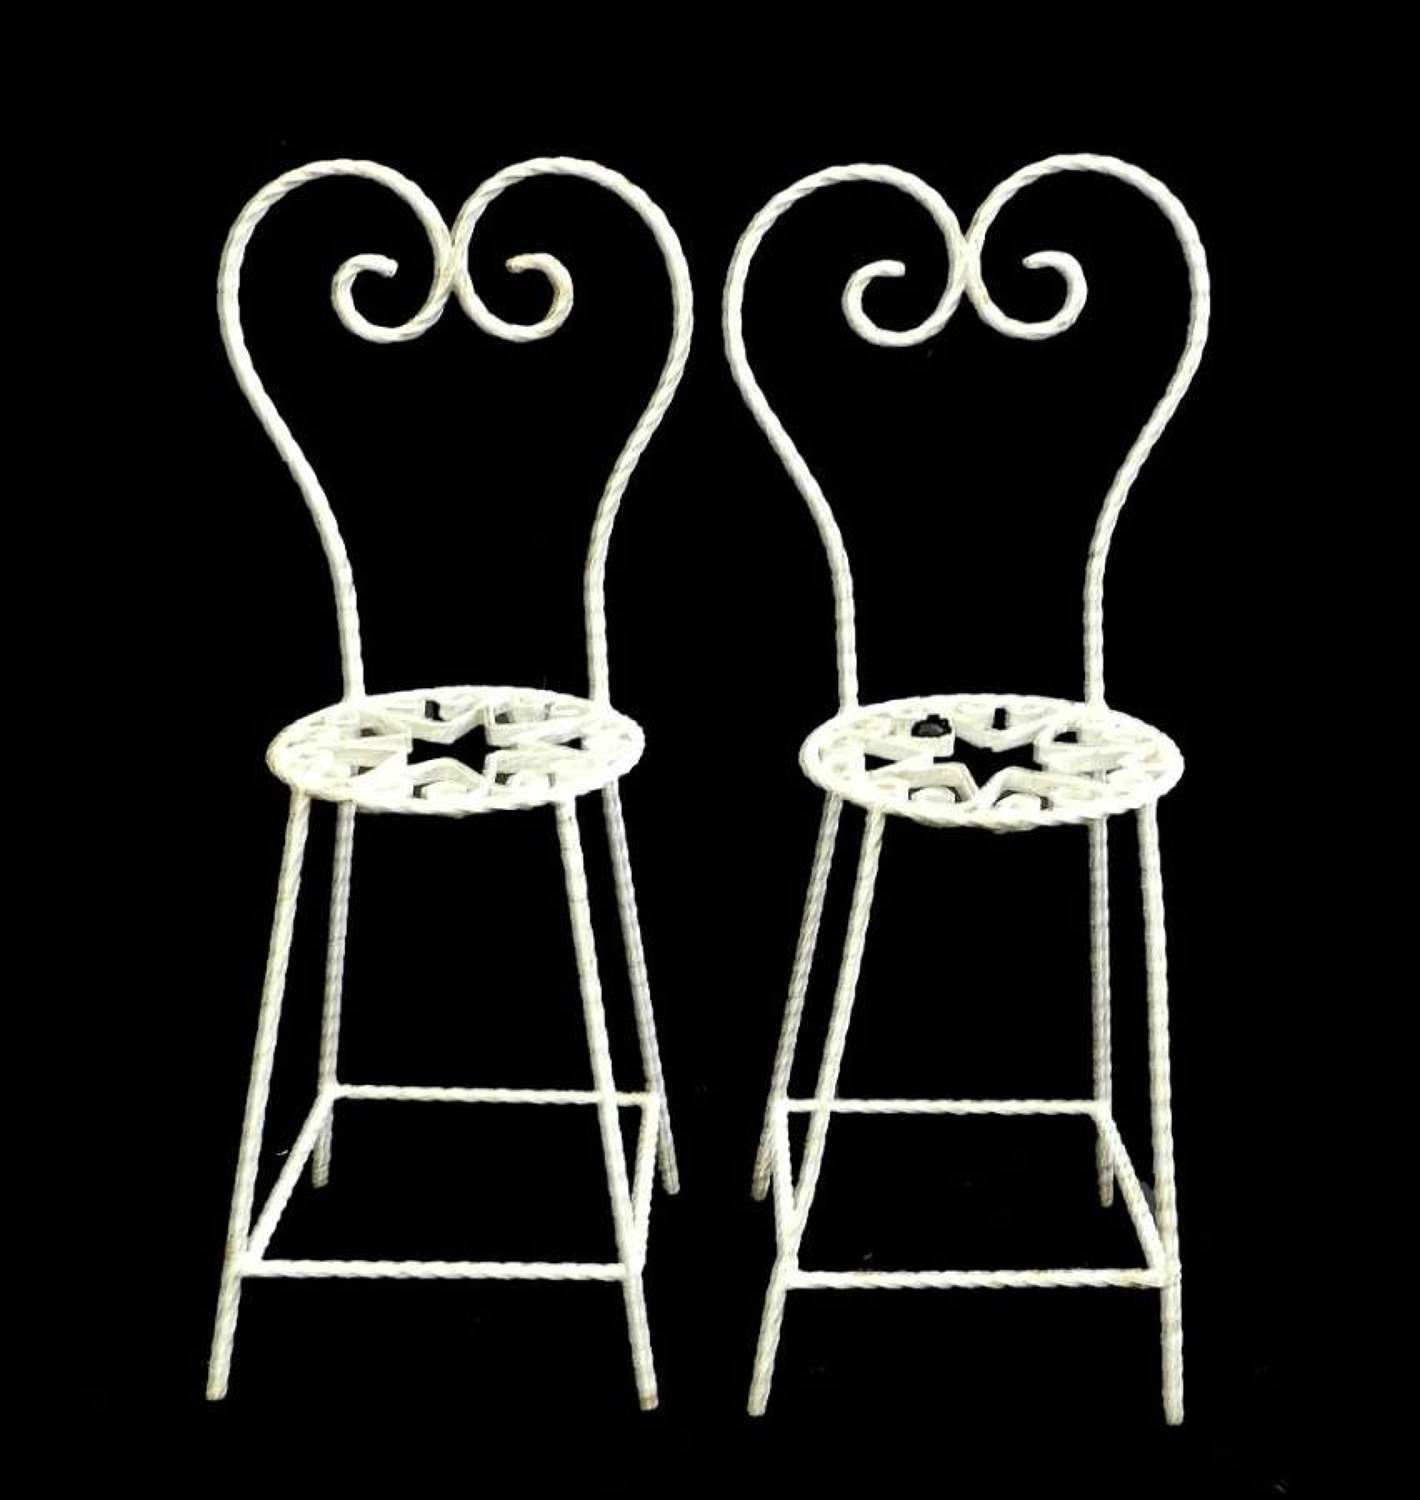 Pair of Childs size French Iron Garden Chairs Decorative Stands Mid Century